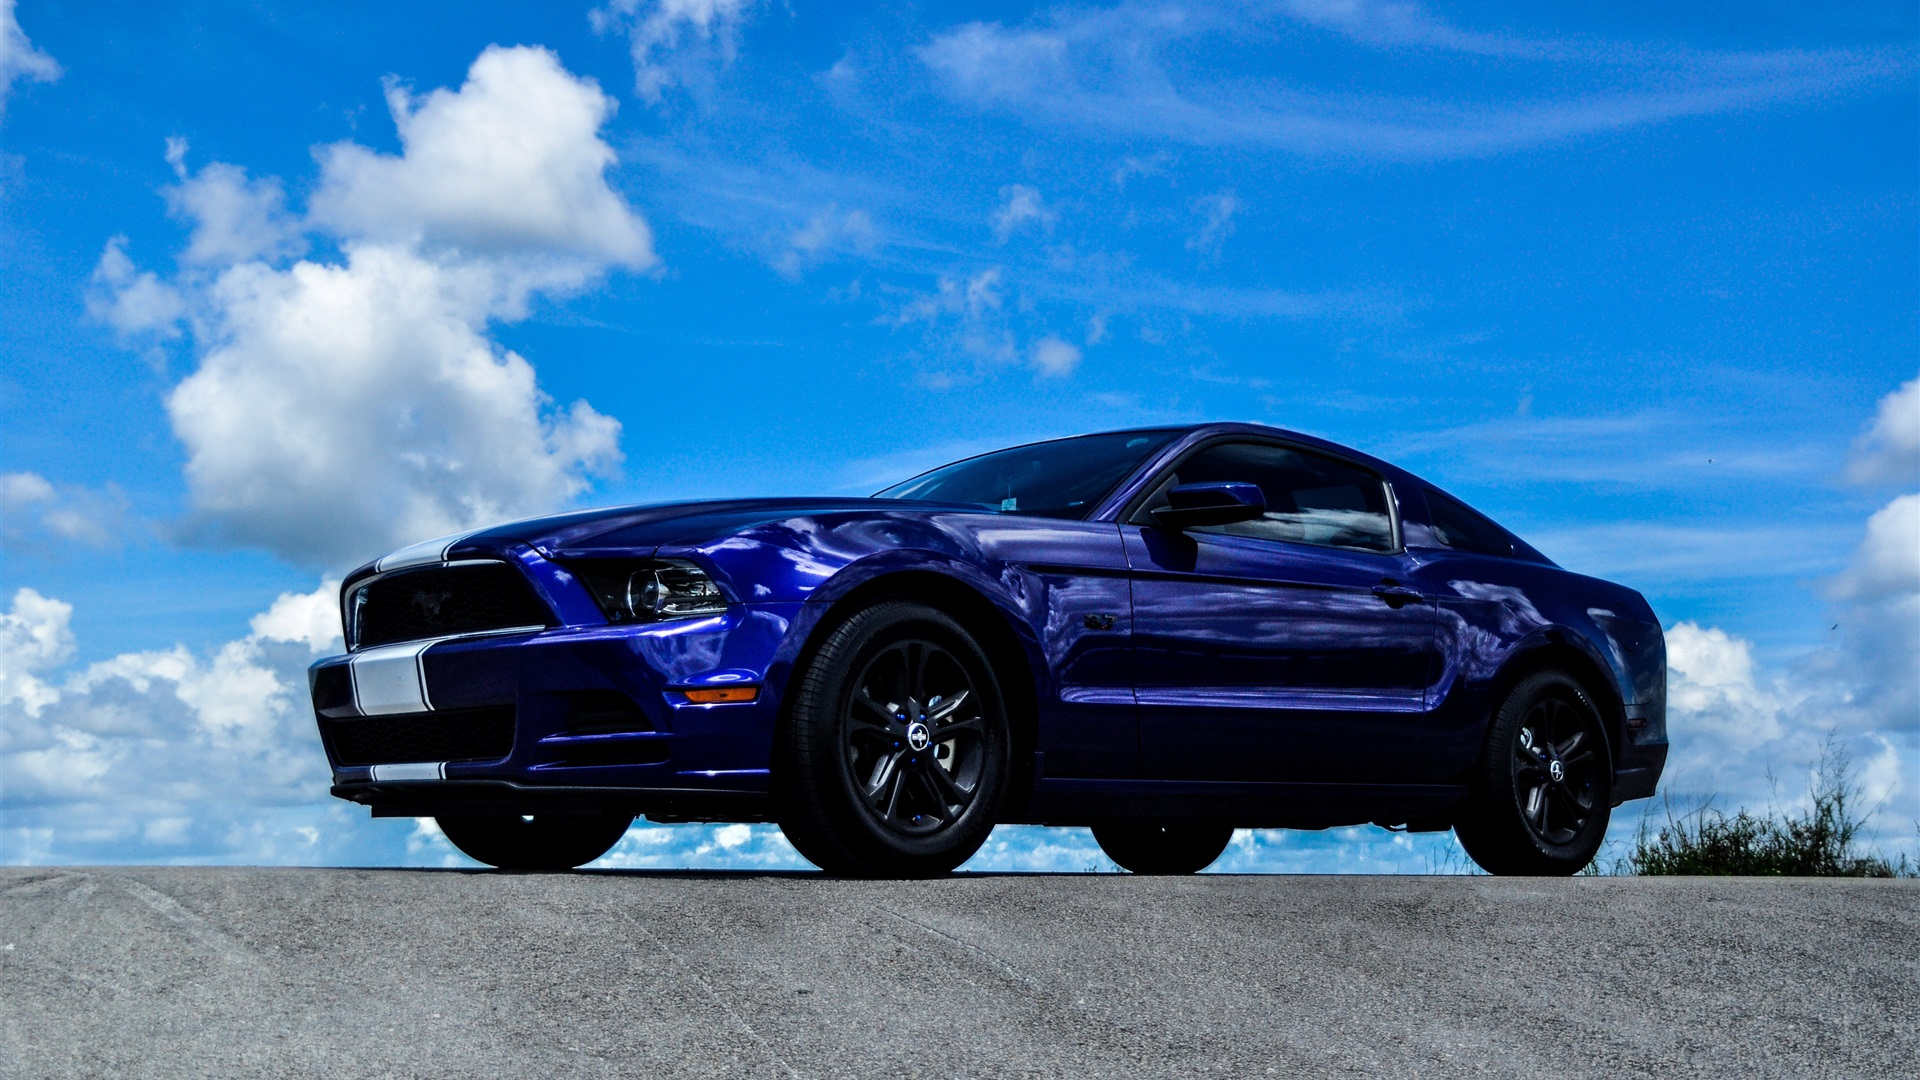 Wallpaper ford mustang blue car side view 3840x2160 uhd 4k picture image - Car side view wallpaper ...